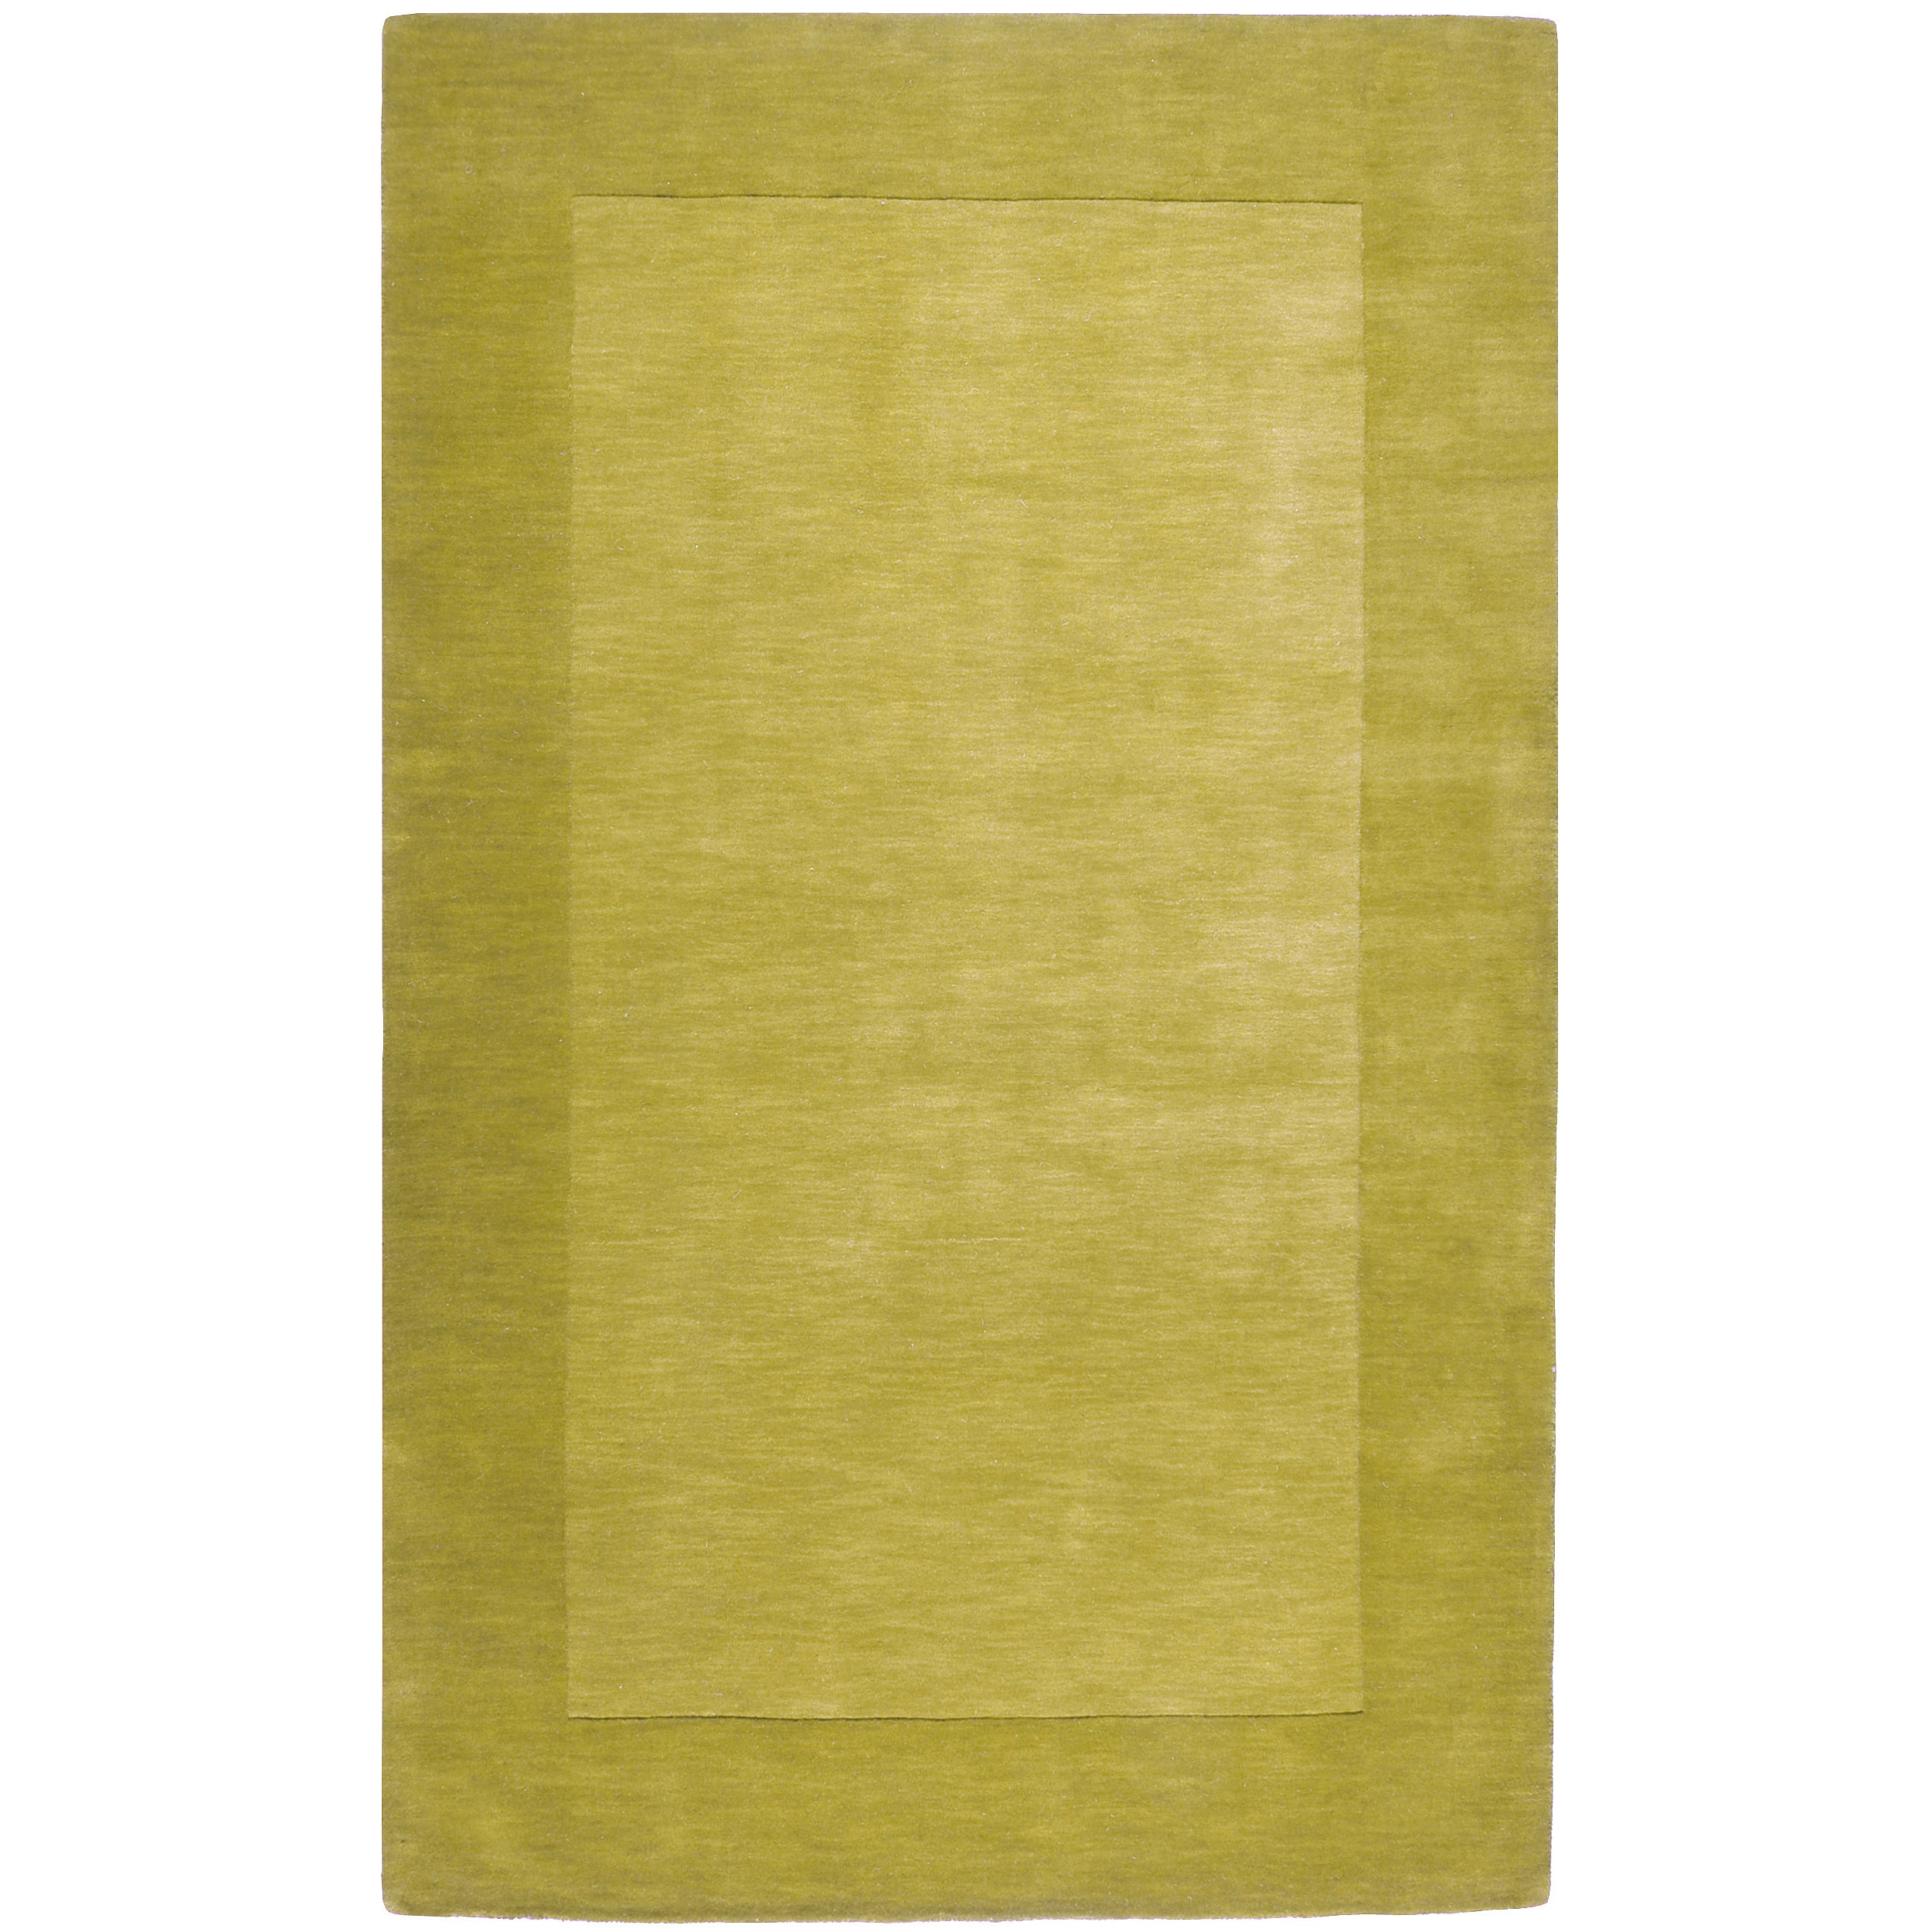 Hand-crafted Green Tone-On-Tone Bordered Mantra Wool Rug (7'6 x 9'6)